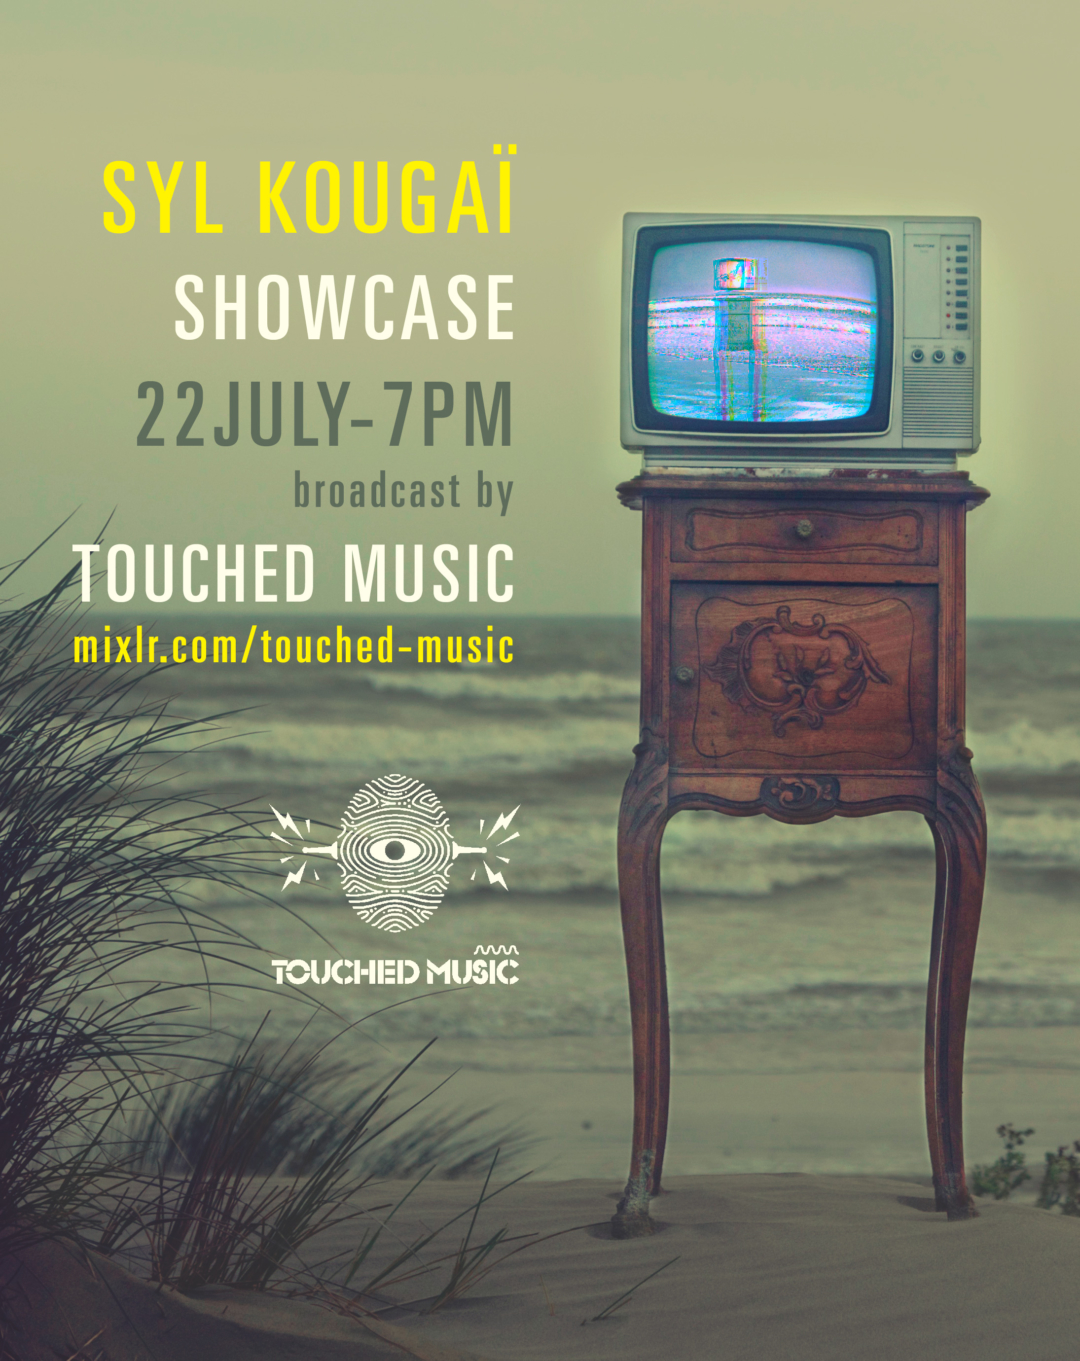 sylkougai-touched-showcase-flyer